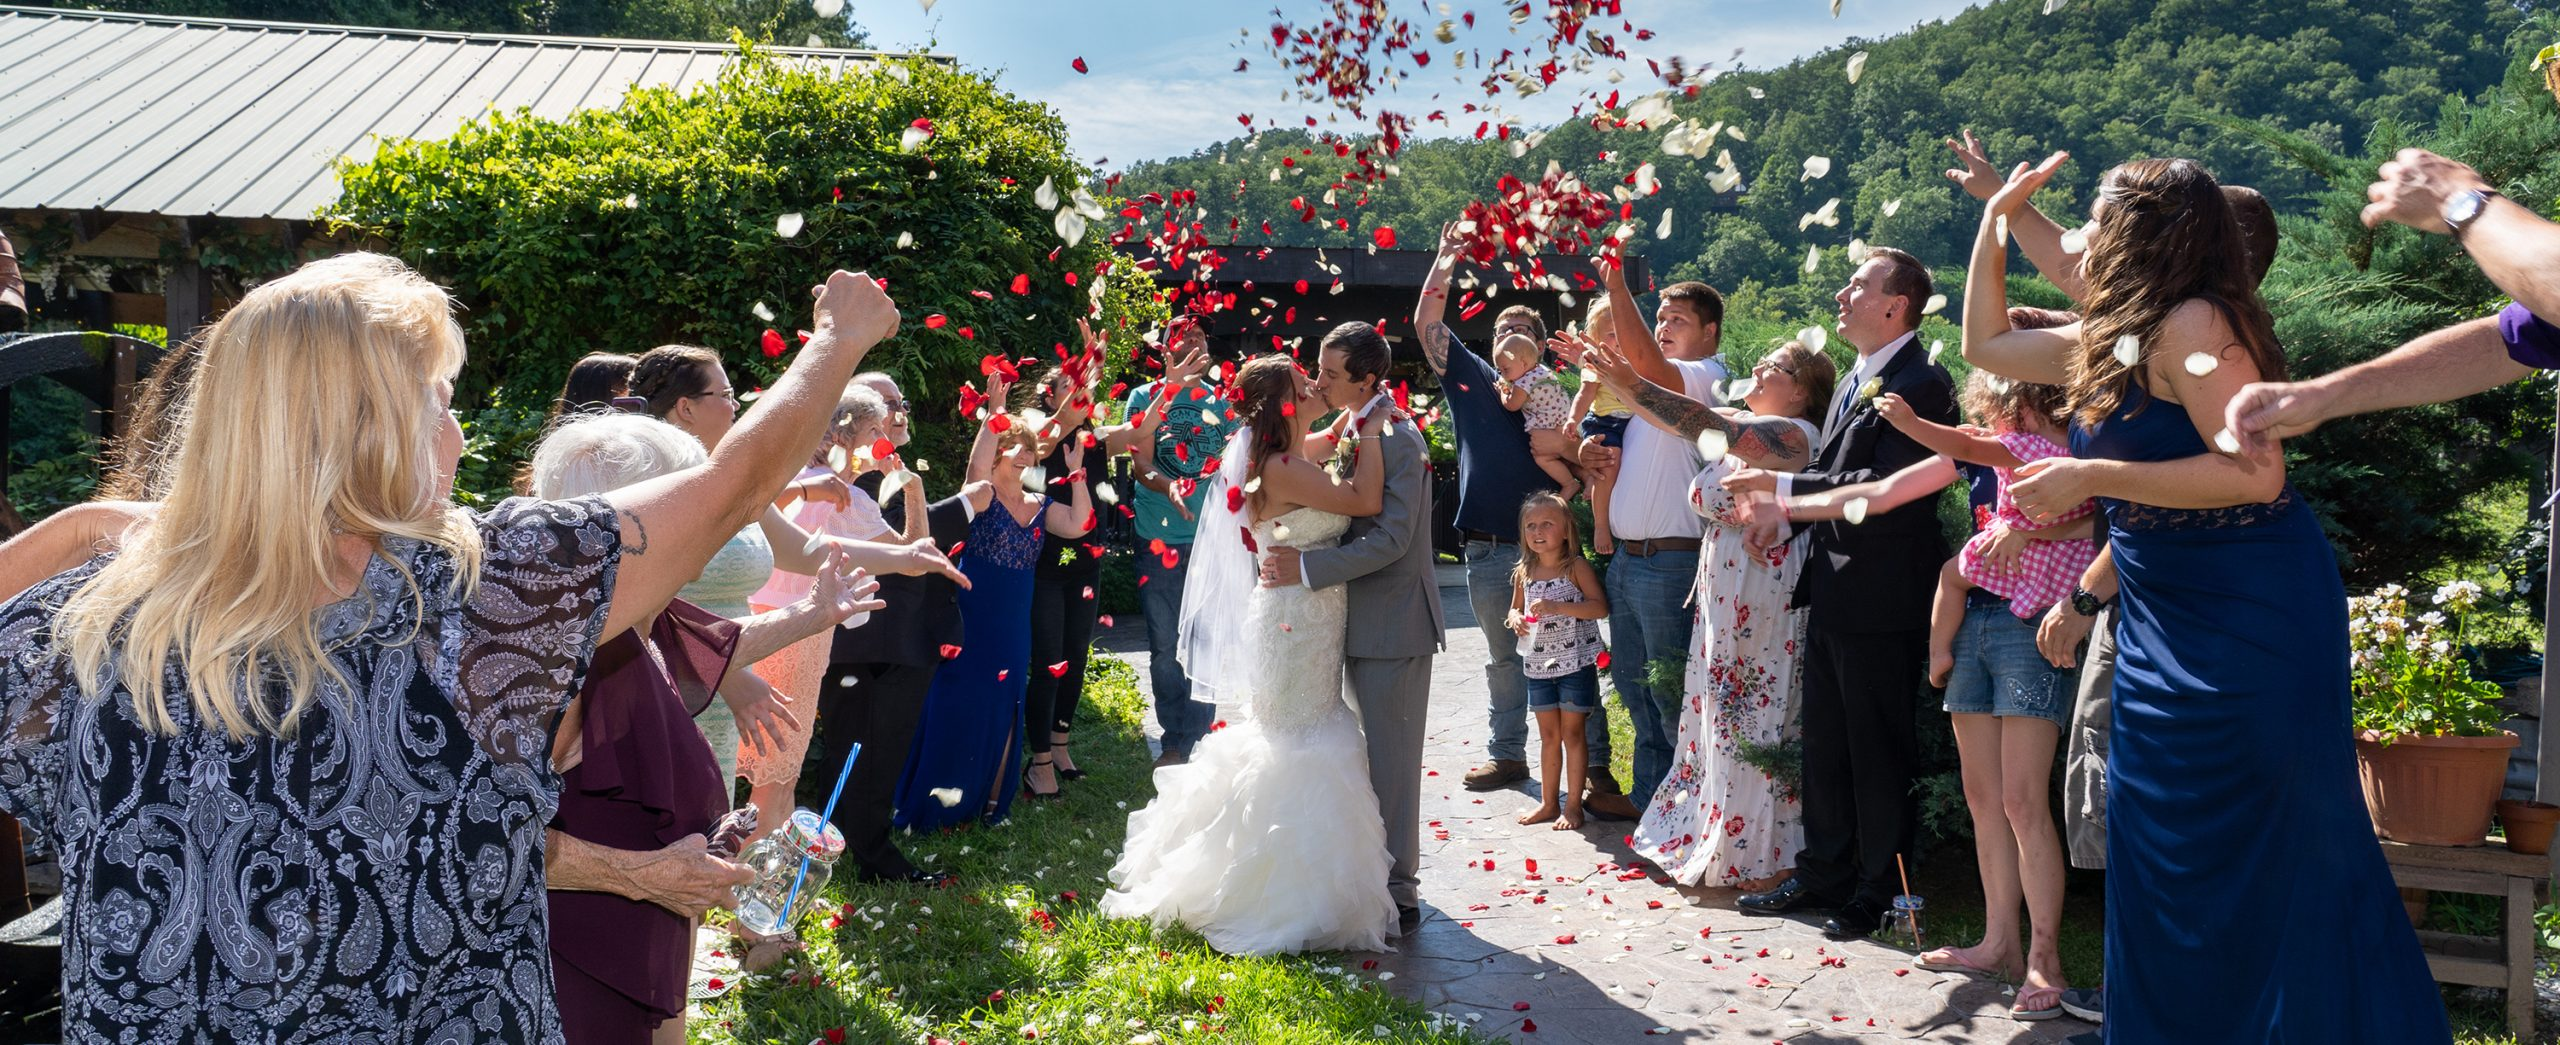 Wedding reception celebration with couple kissing and family tossing rose petals at Honeysuckle Hills in Pigeon Forge